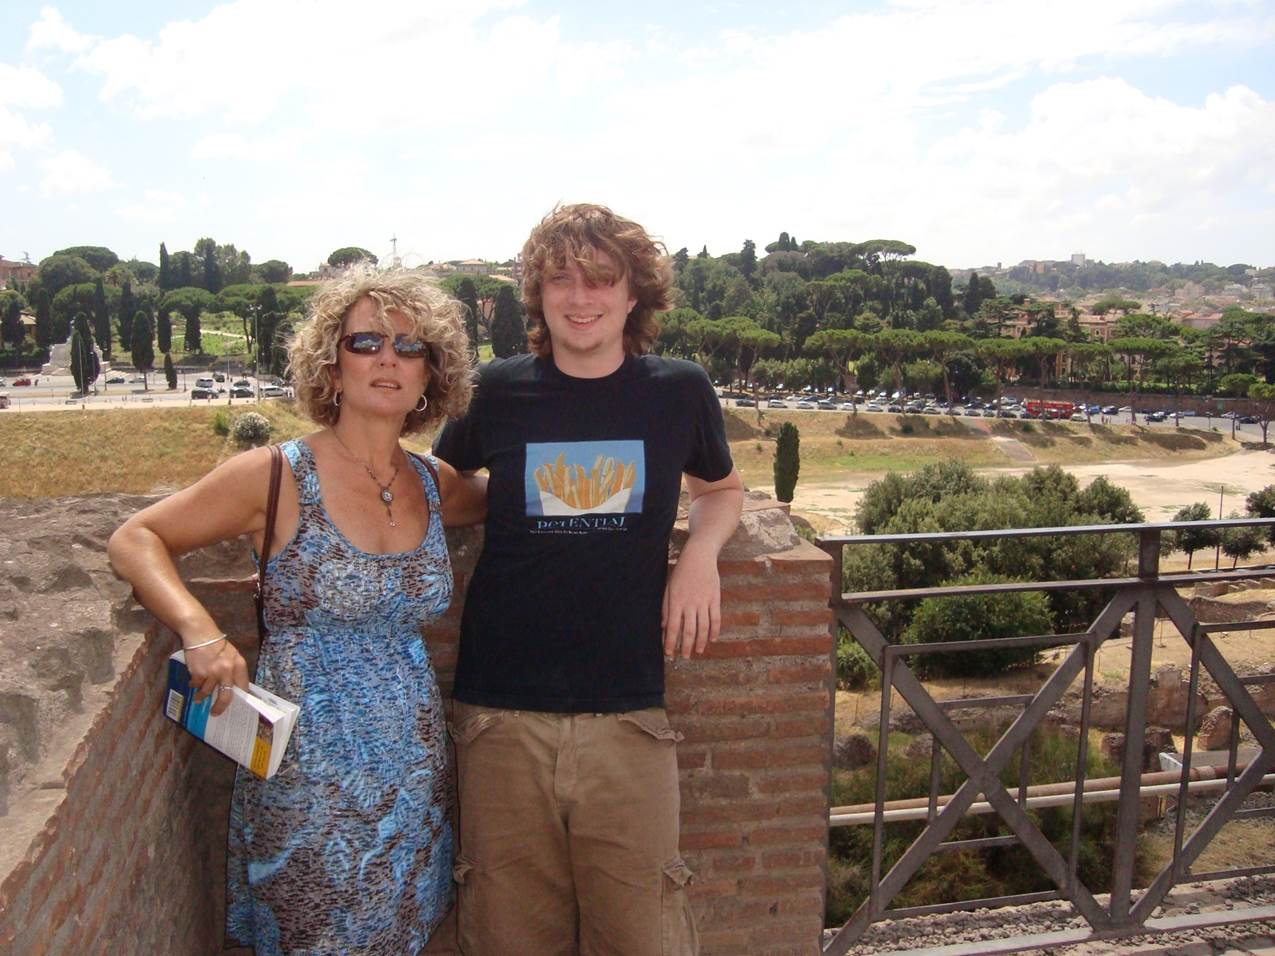 Jenny and Alex at Circus Maximus in Rome